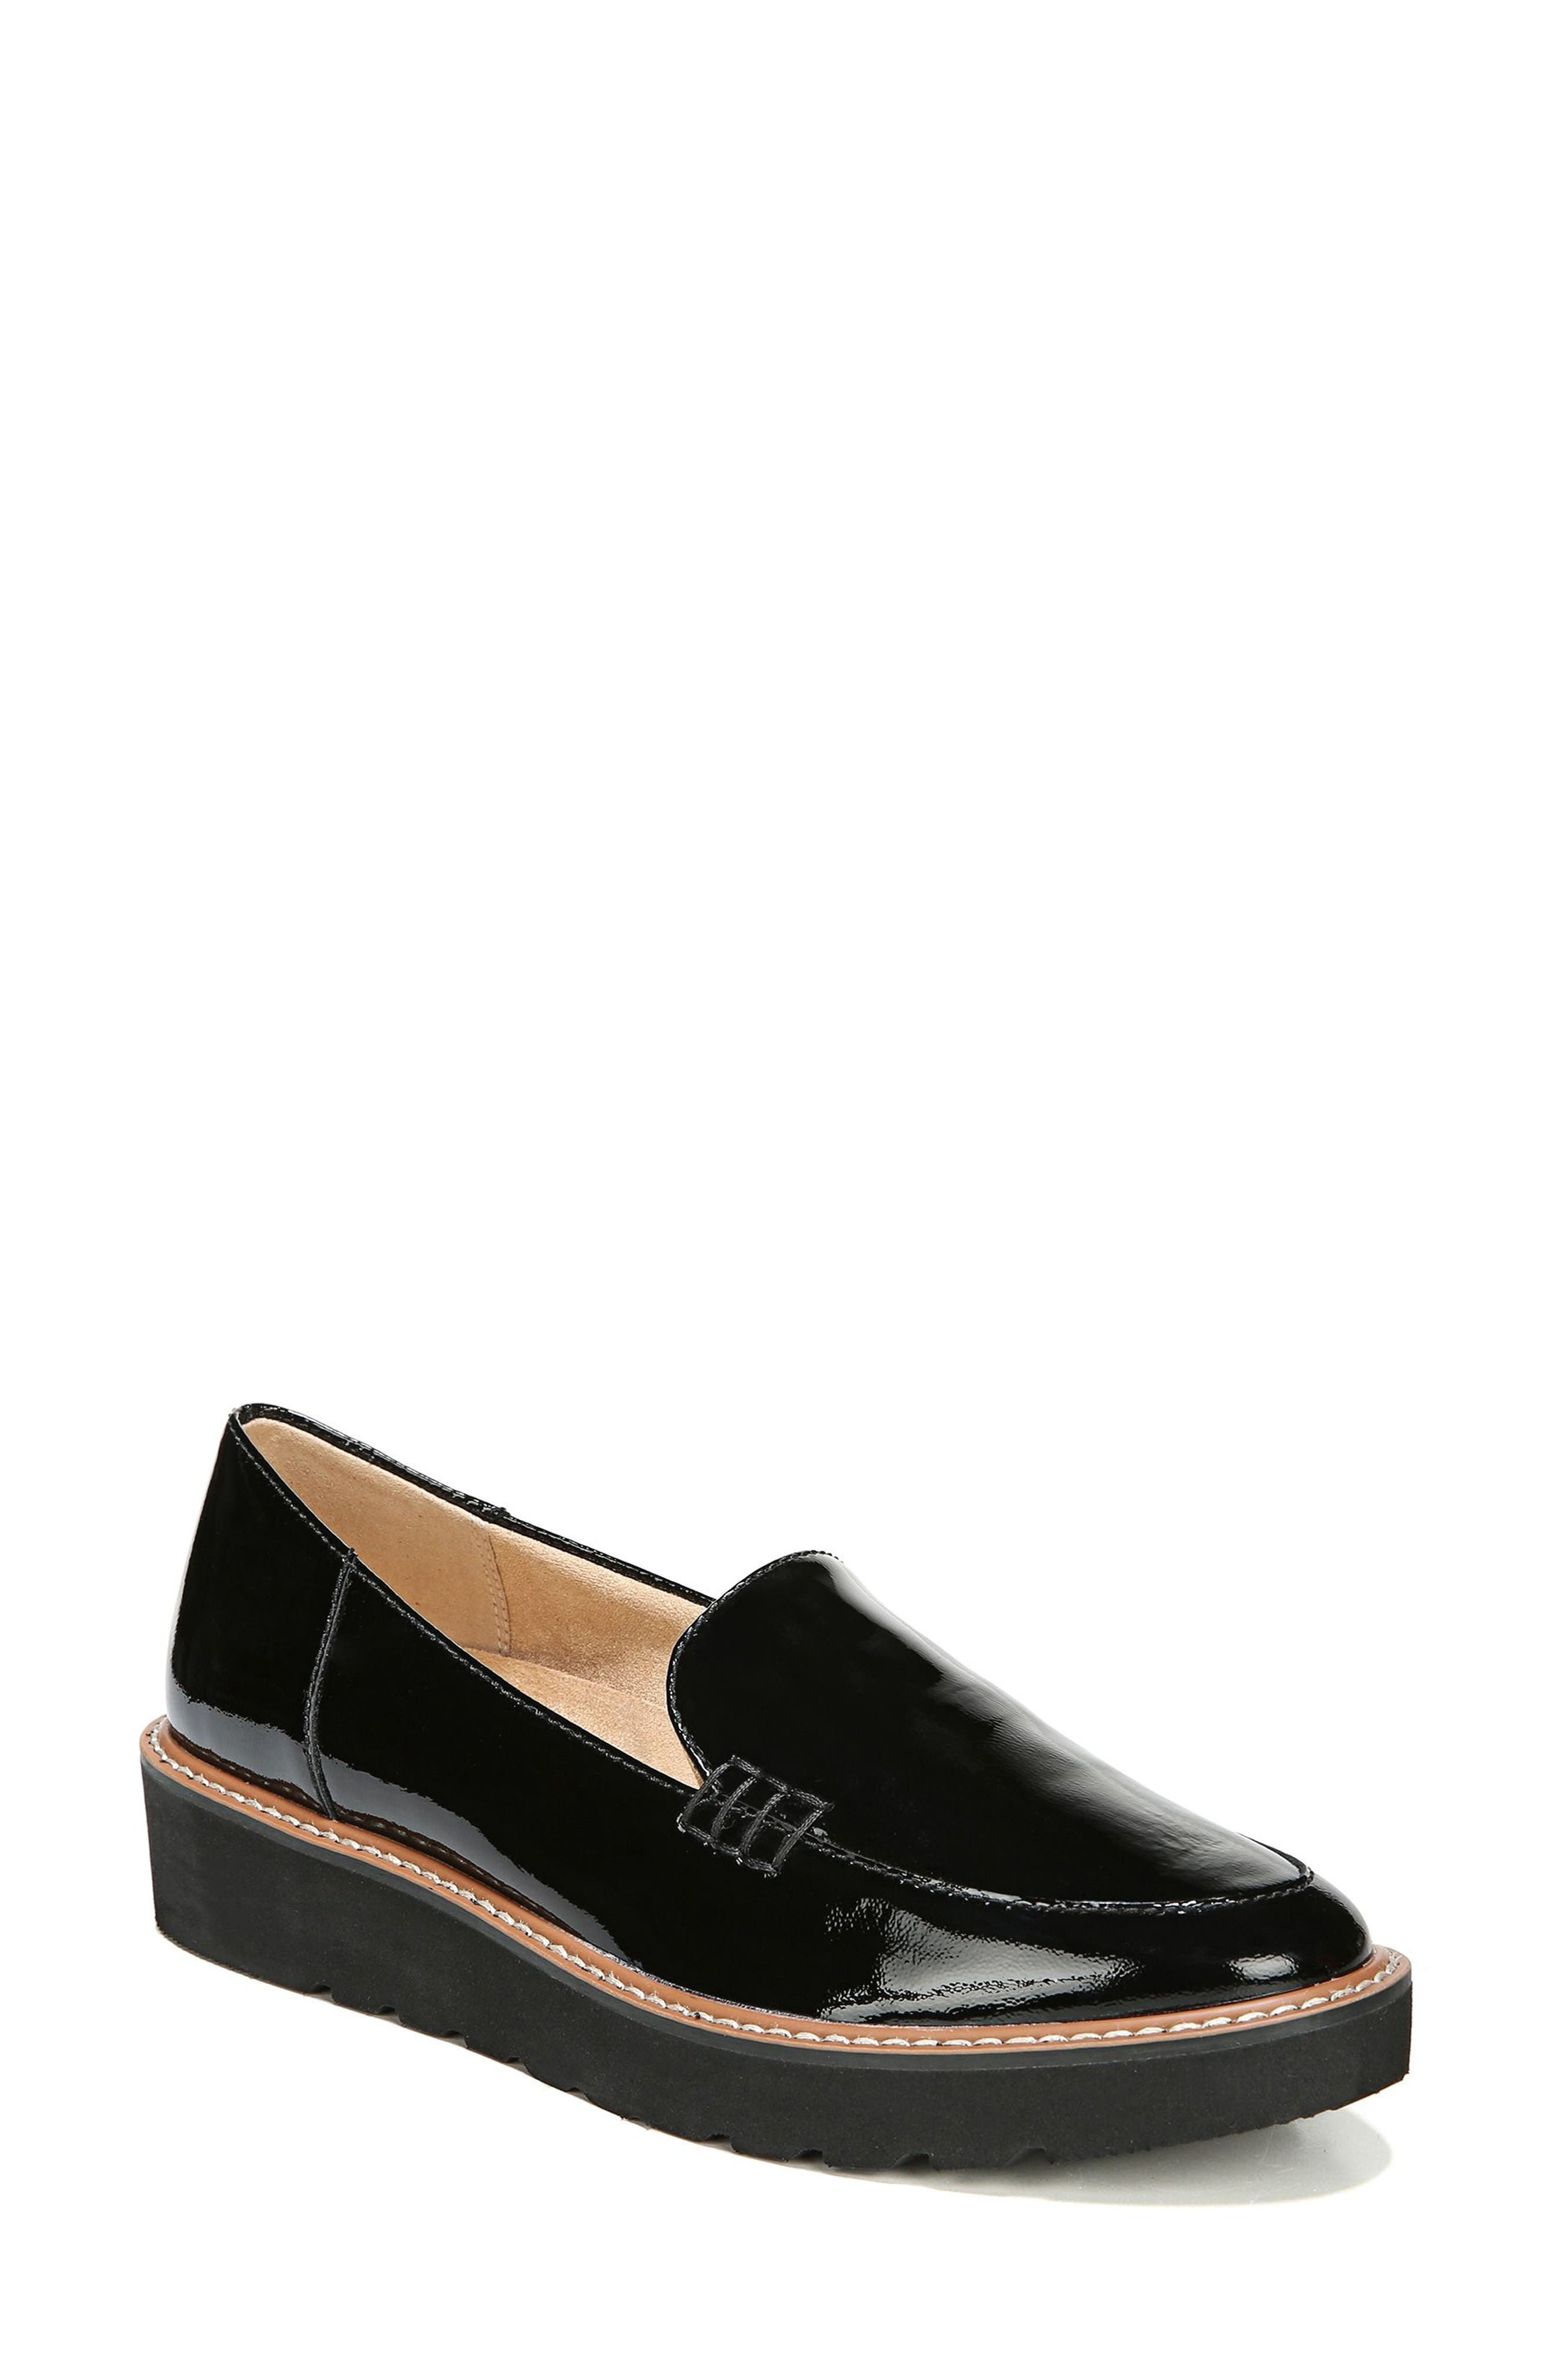 Naturalizer Andie Loafer- Black